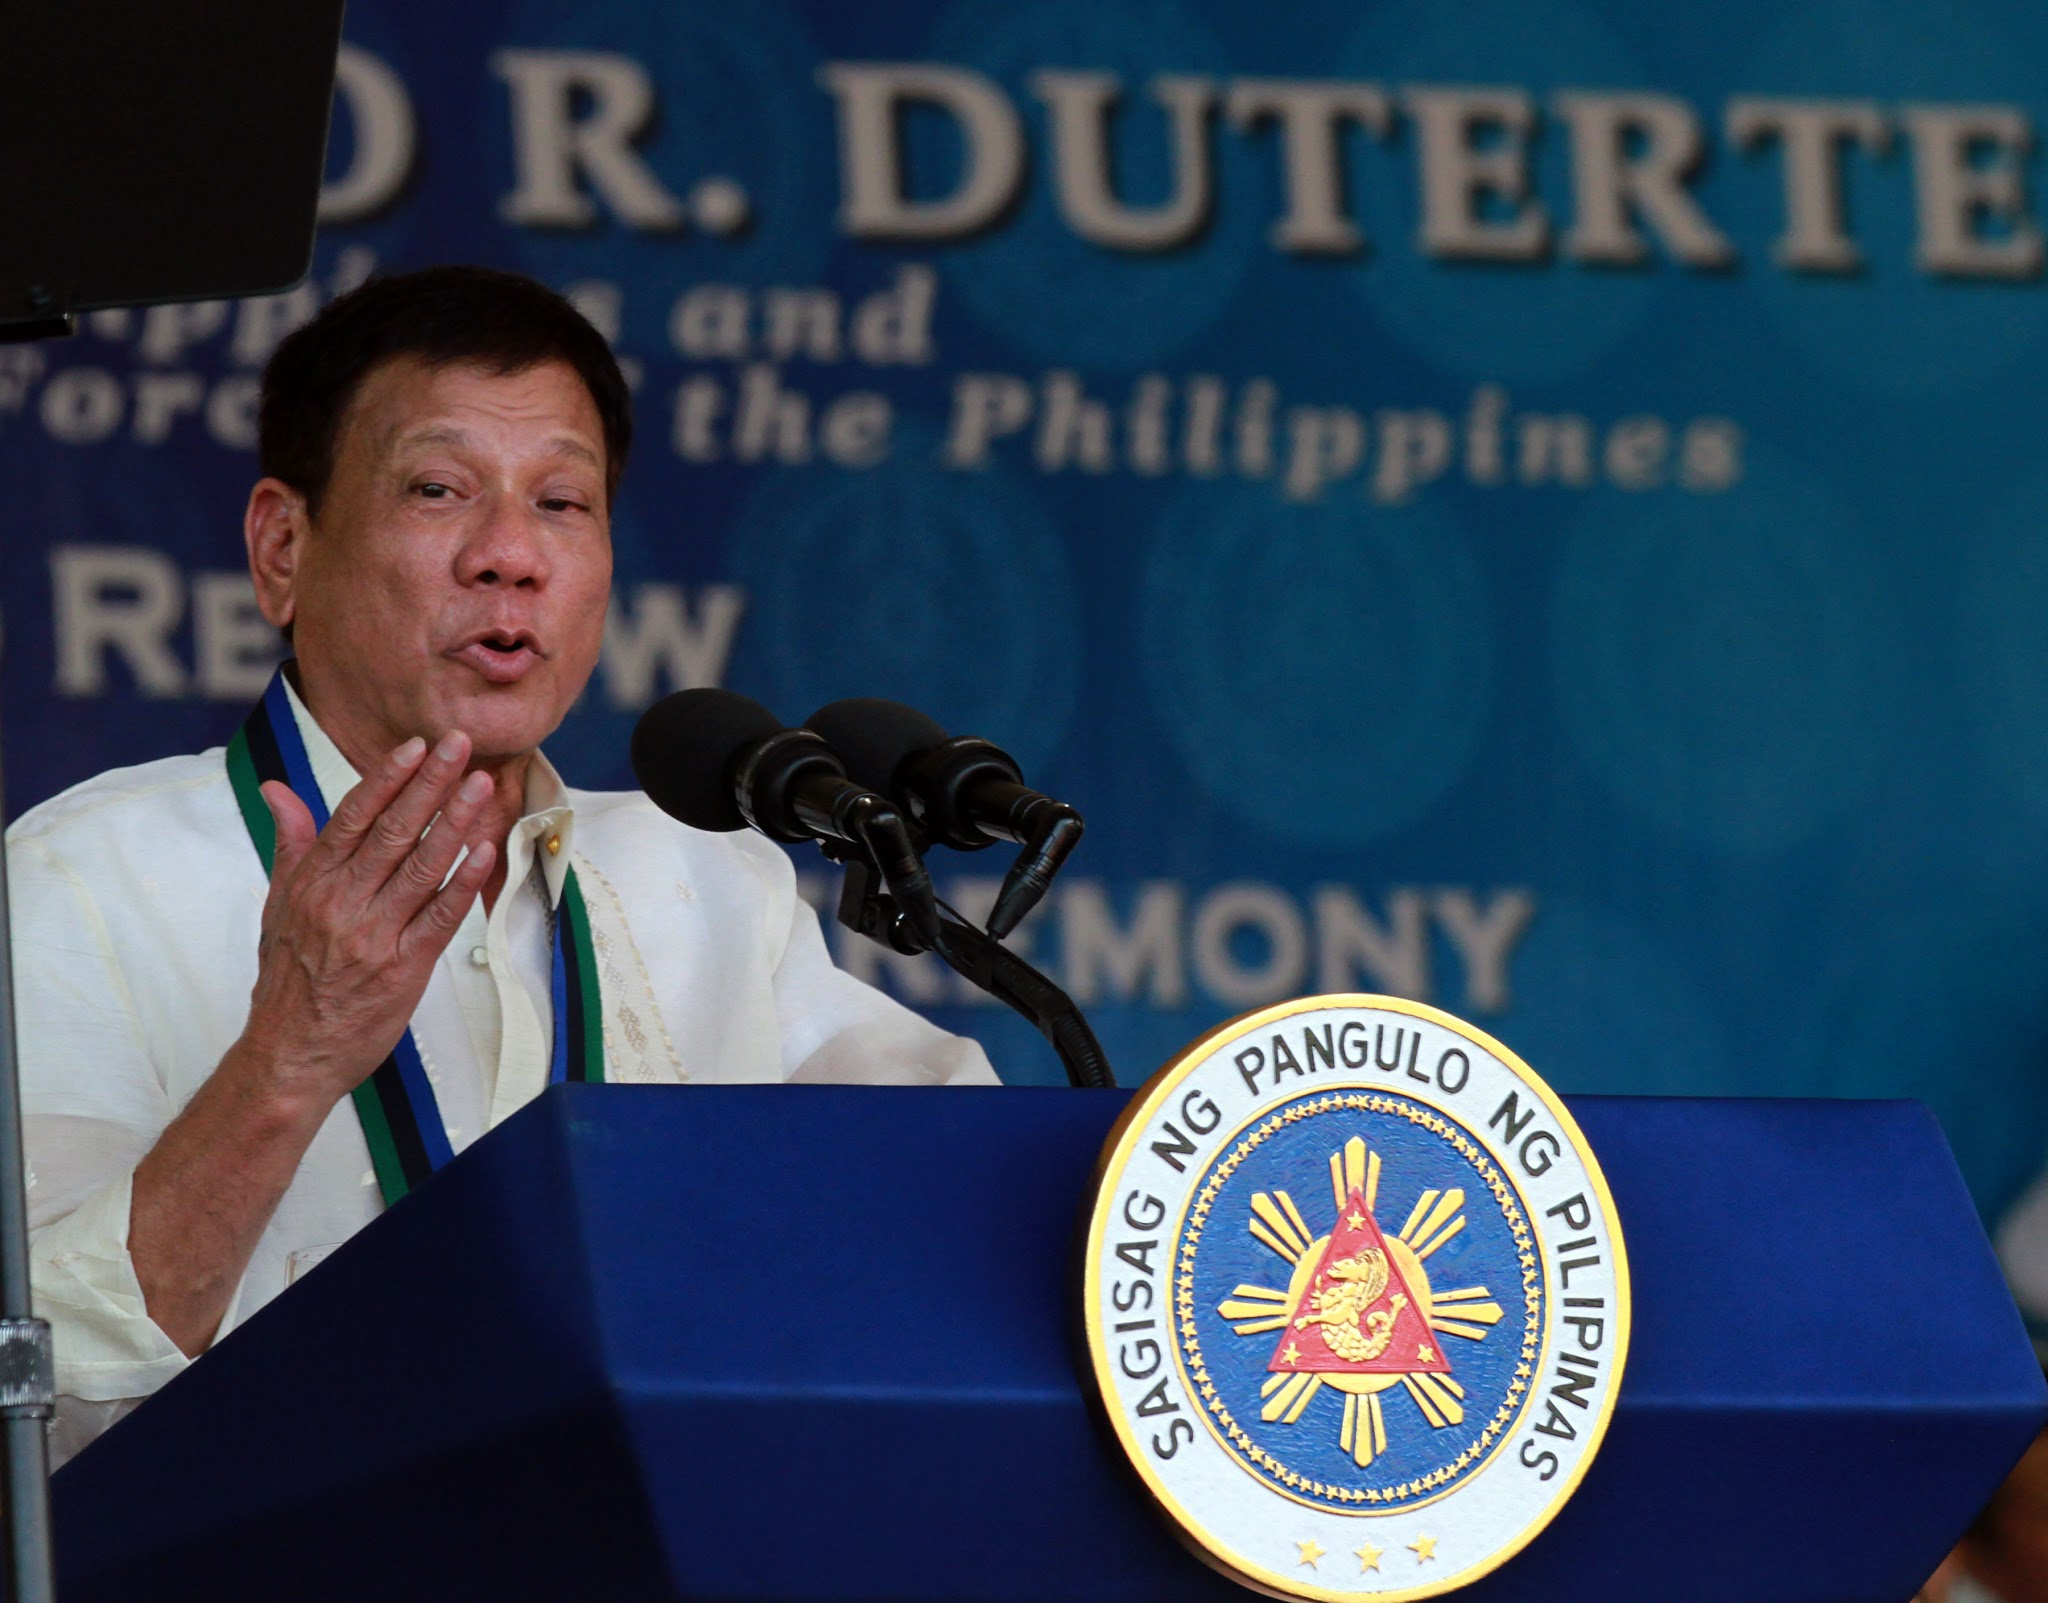 UN official condemns Philippines president's Hitler remarks